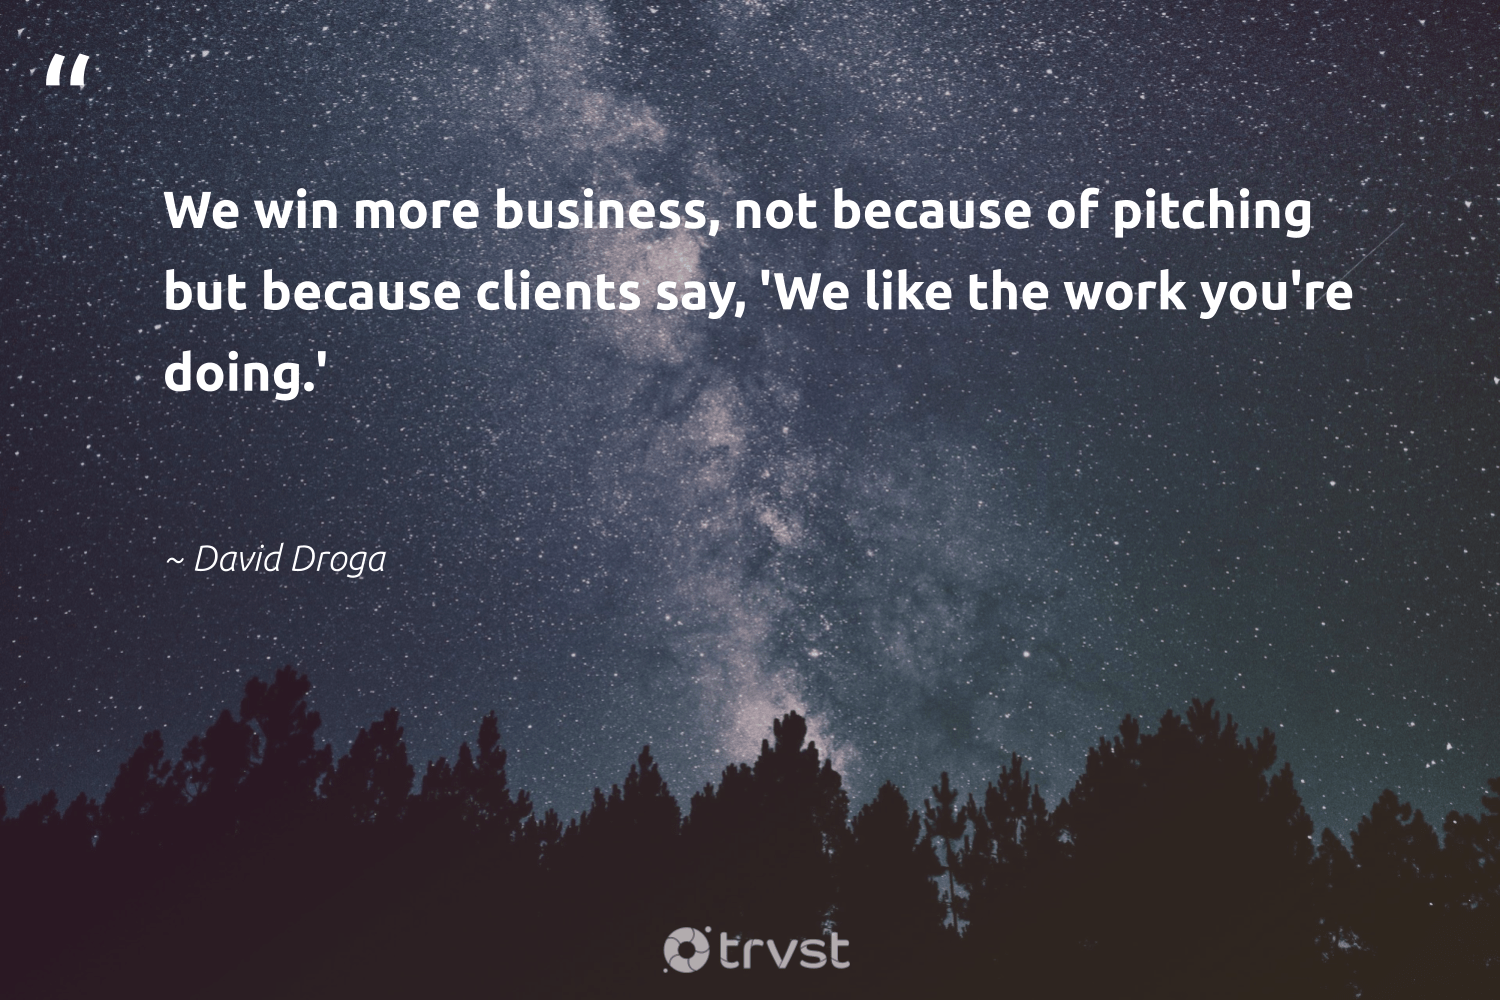 """We win more business, not because of pitching but because clients say, 'We like the work you're doing.'""  - David Droga #trvst #quotes #begreat #ecoconscious #futureofwork #dosomething #softskills #bethechange #nevergiveup #changetheworld #takeaction #thinkgreen"